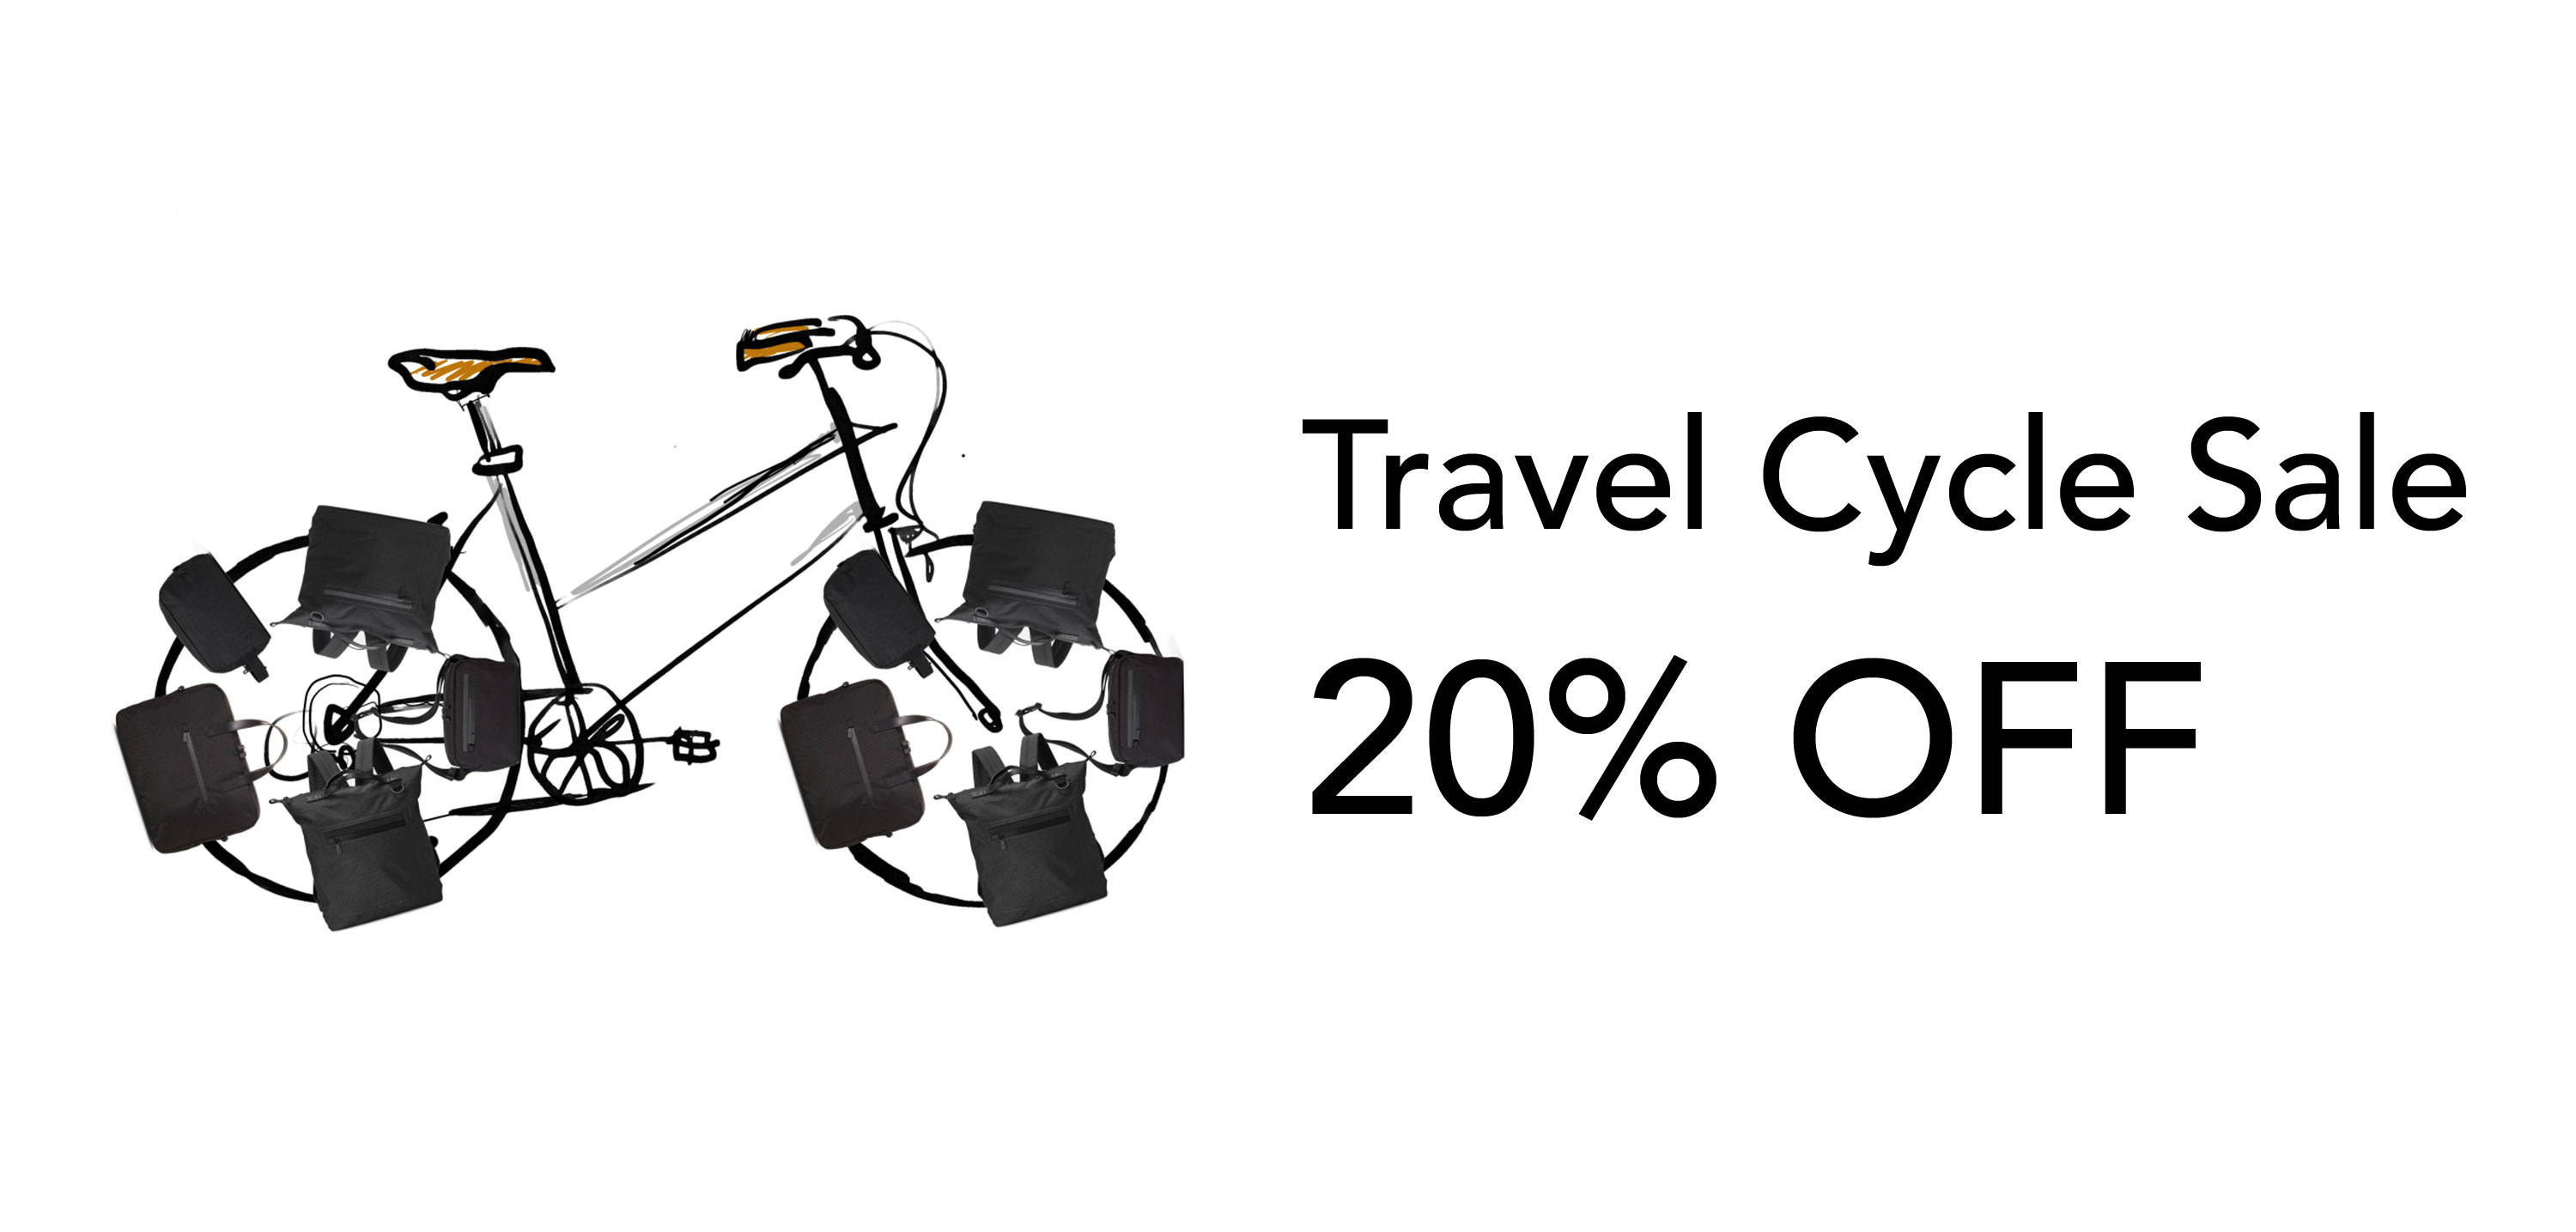 Ally Capellino April 2021 Travel Cycle Sale